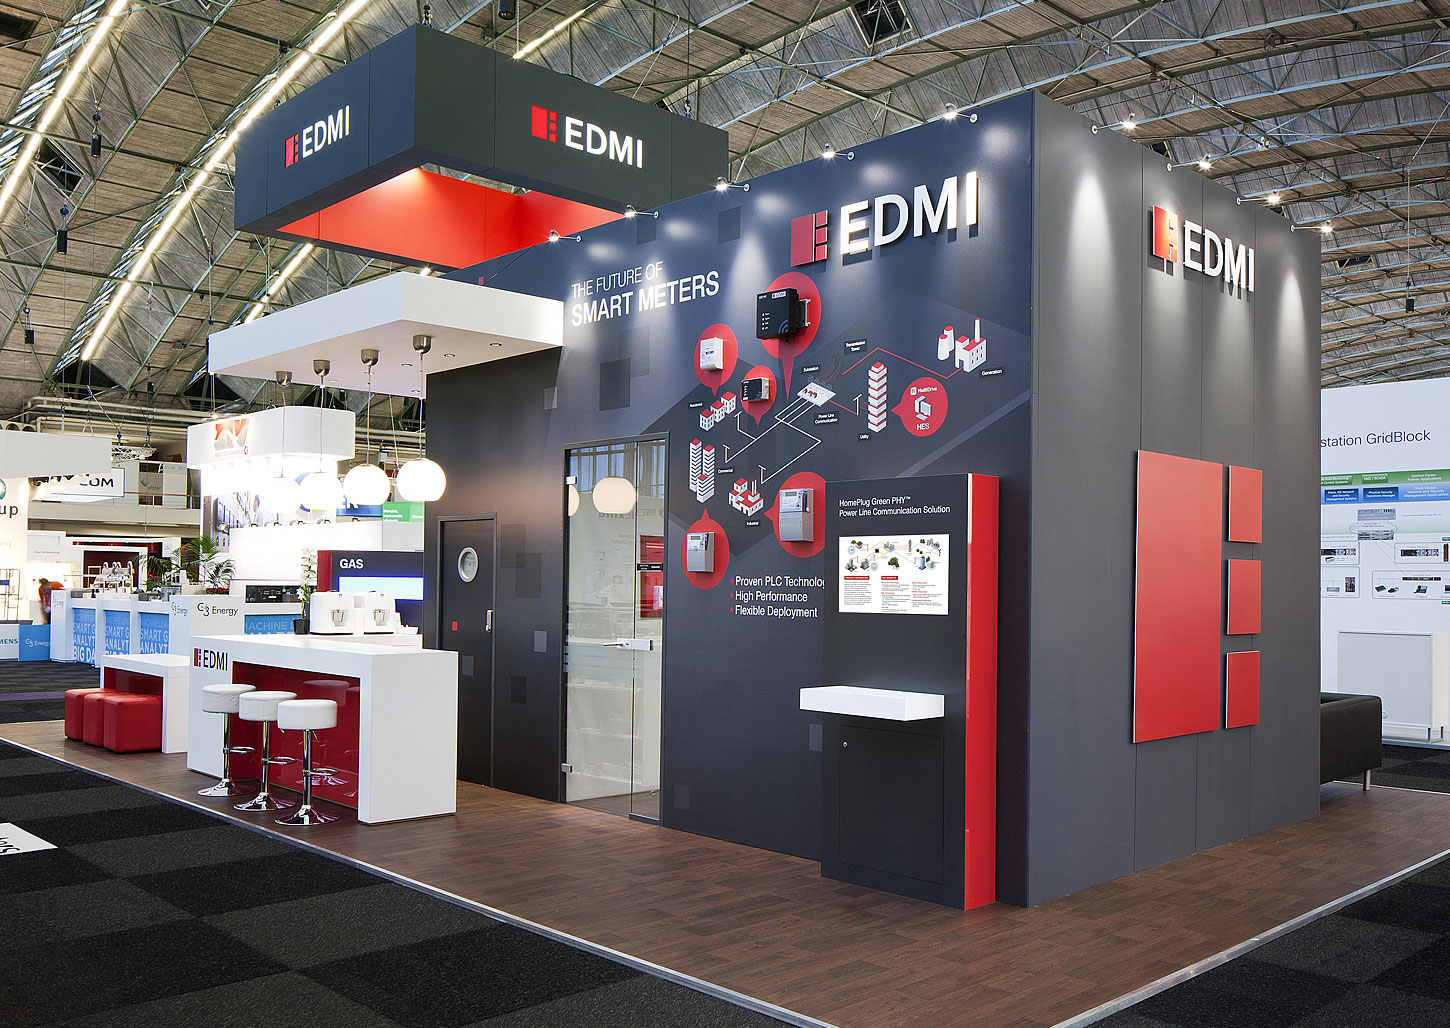 EDMI - exhibition design